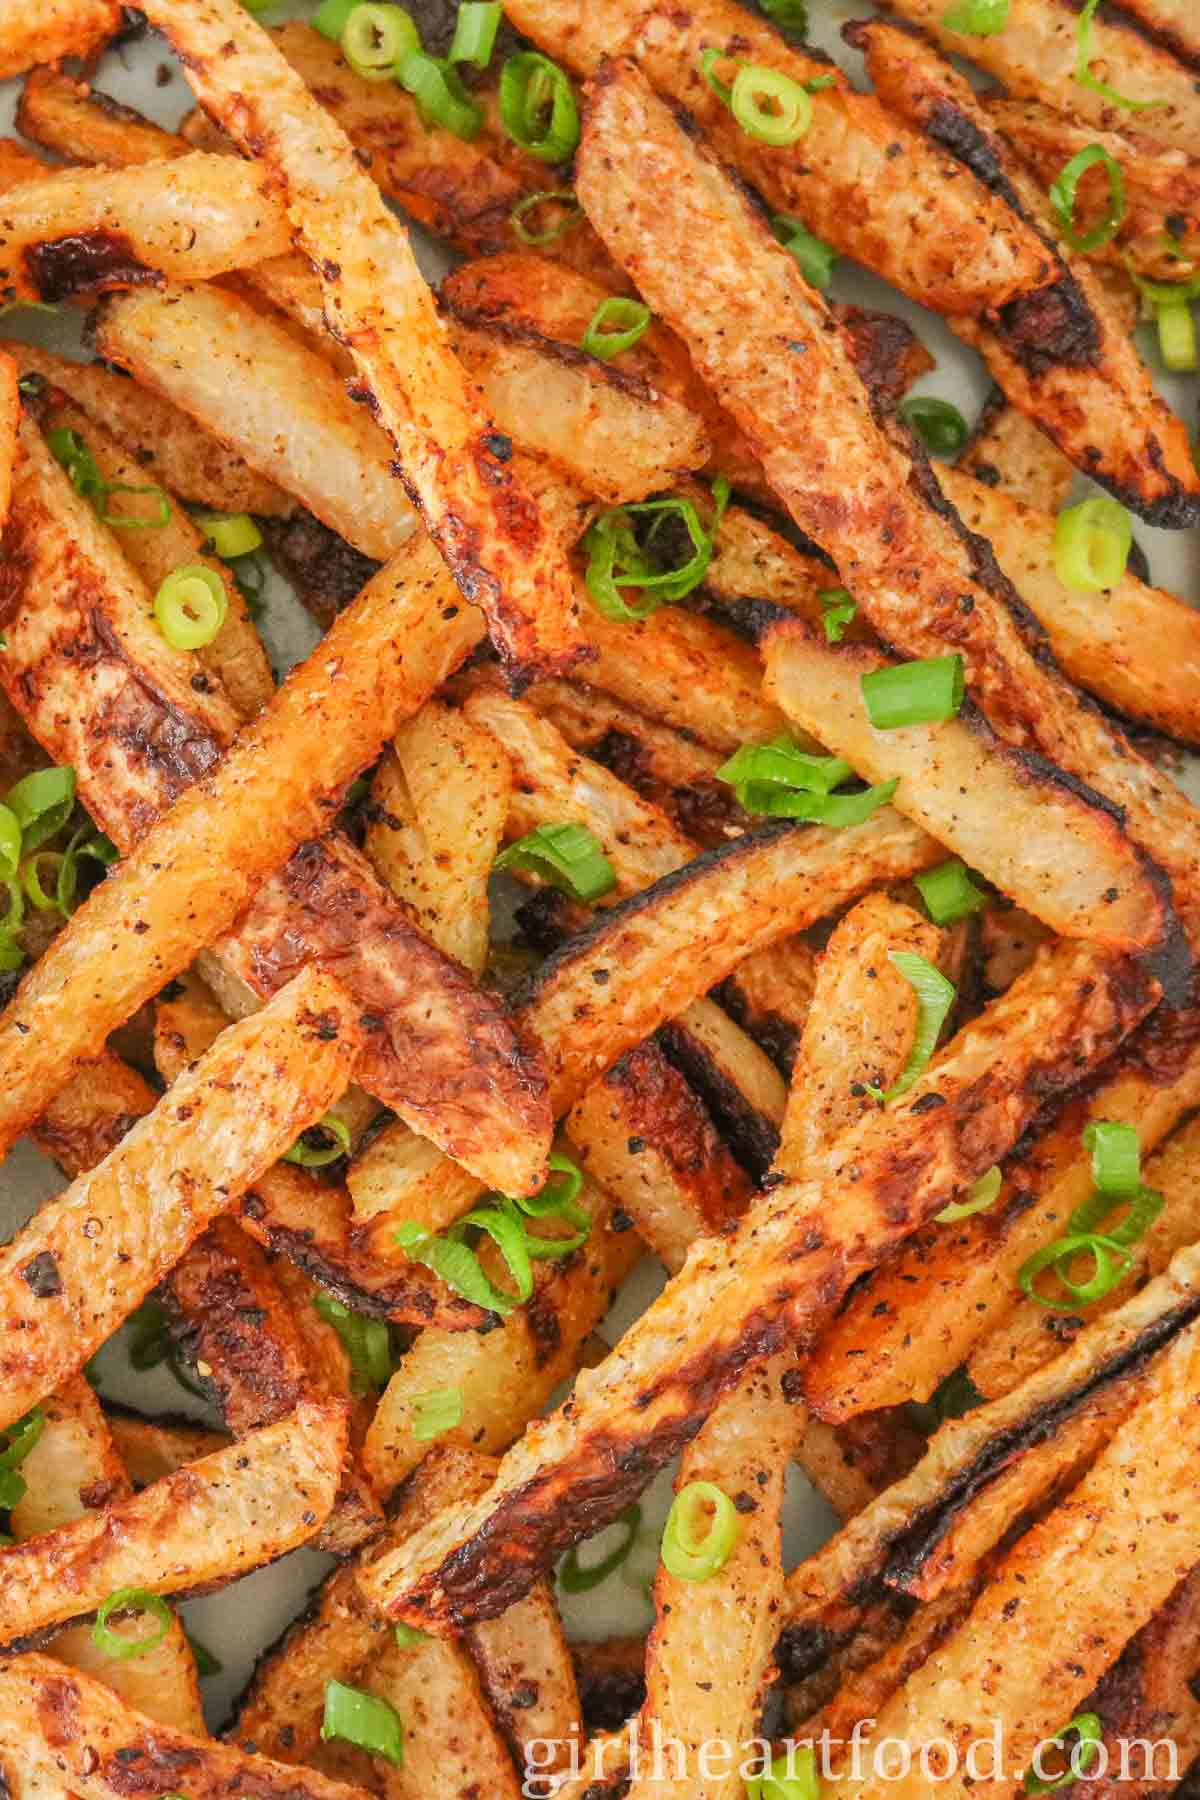 Tight close-up of kohlrabi fries garnished with green onion.